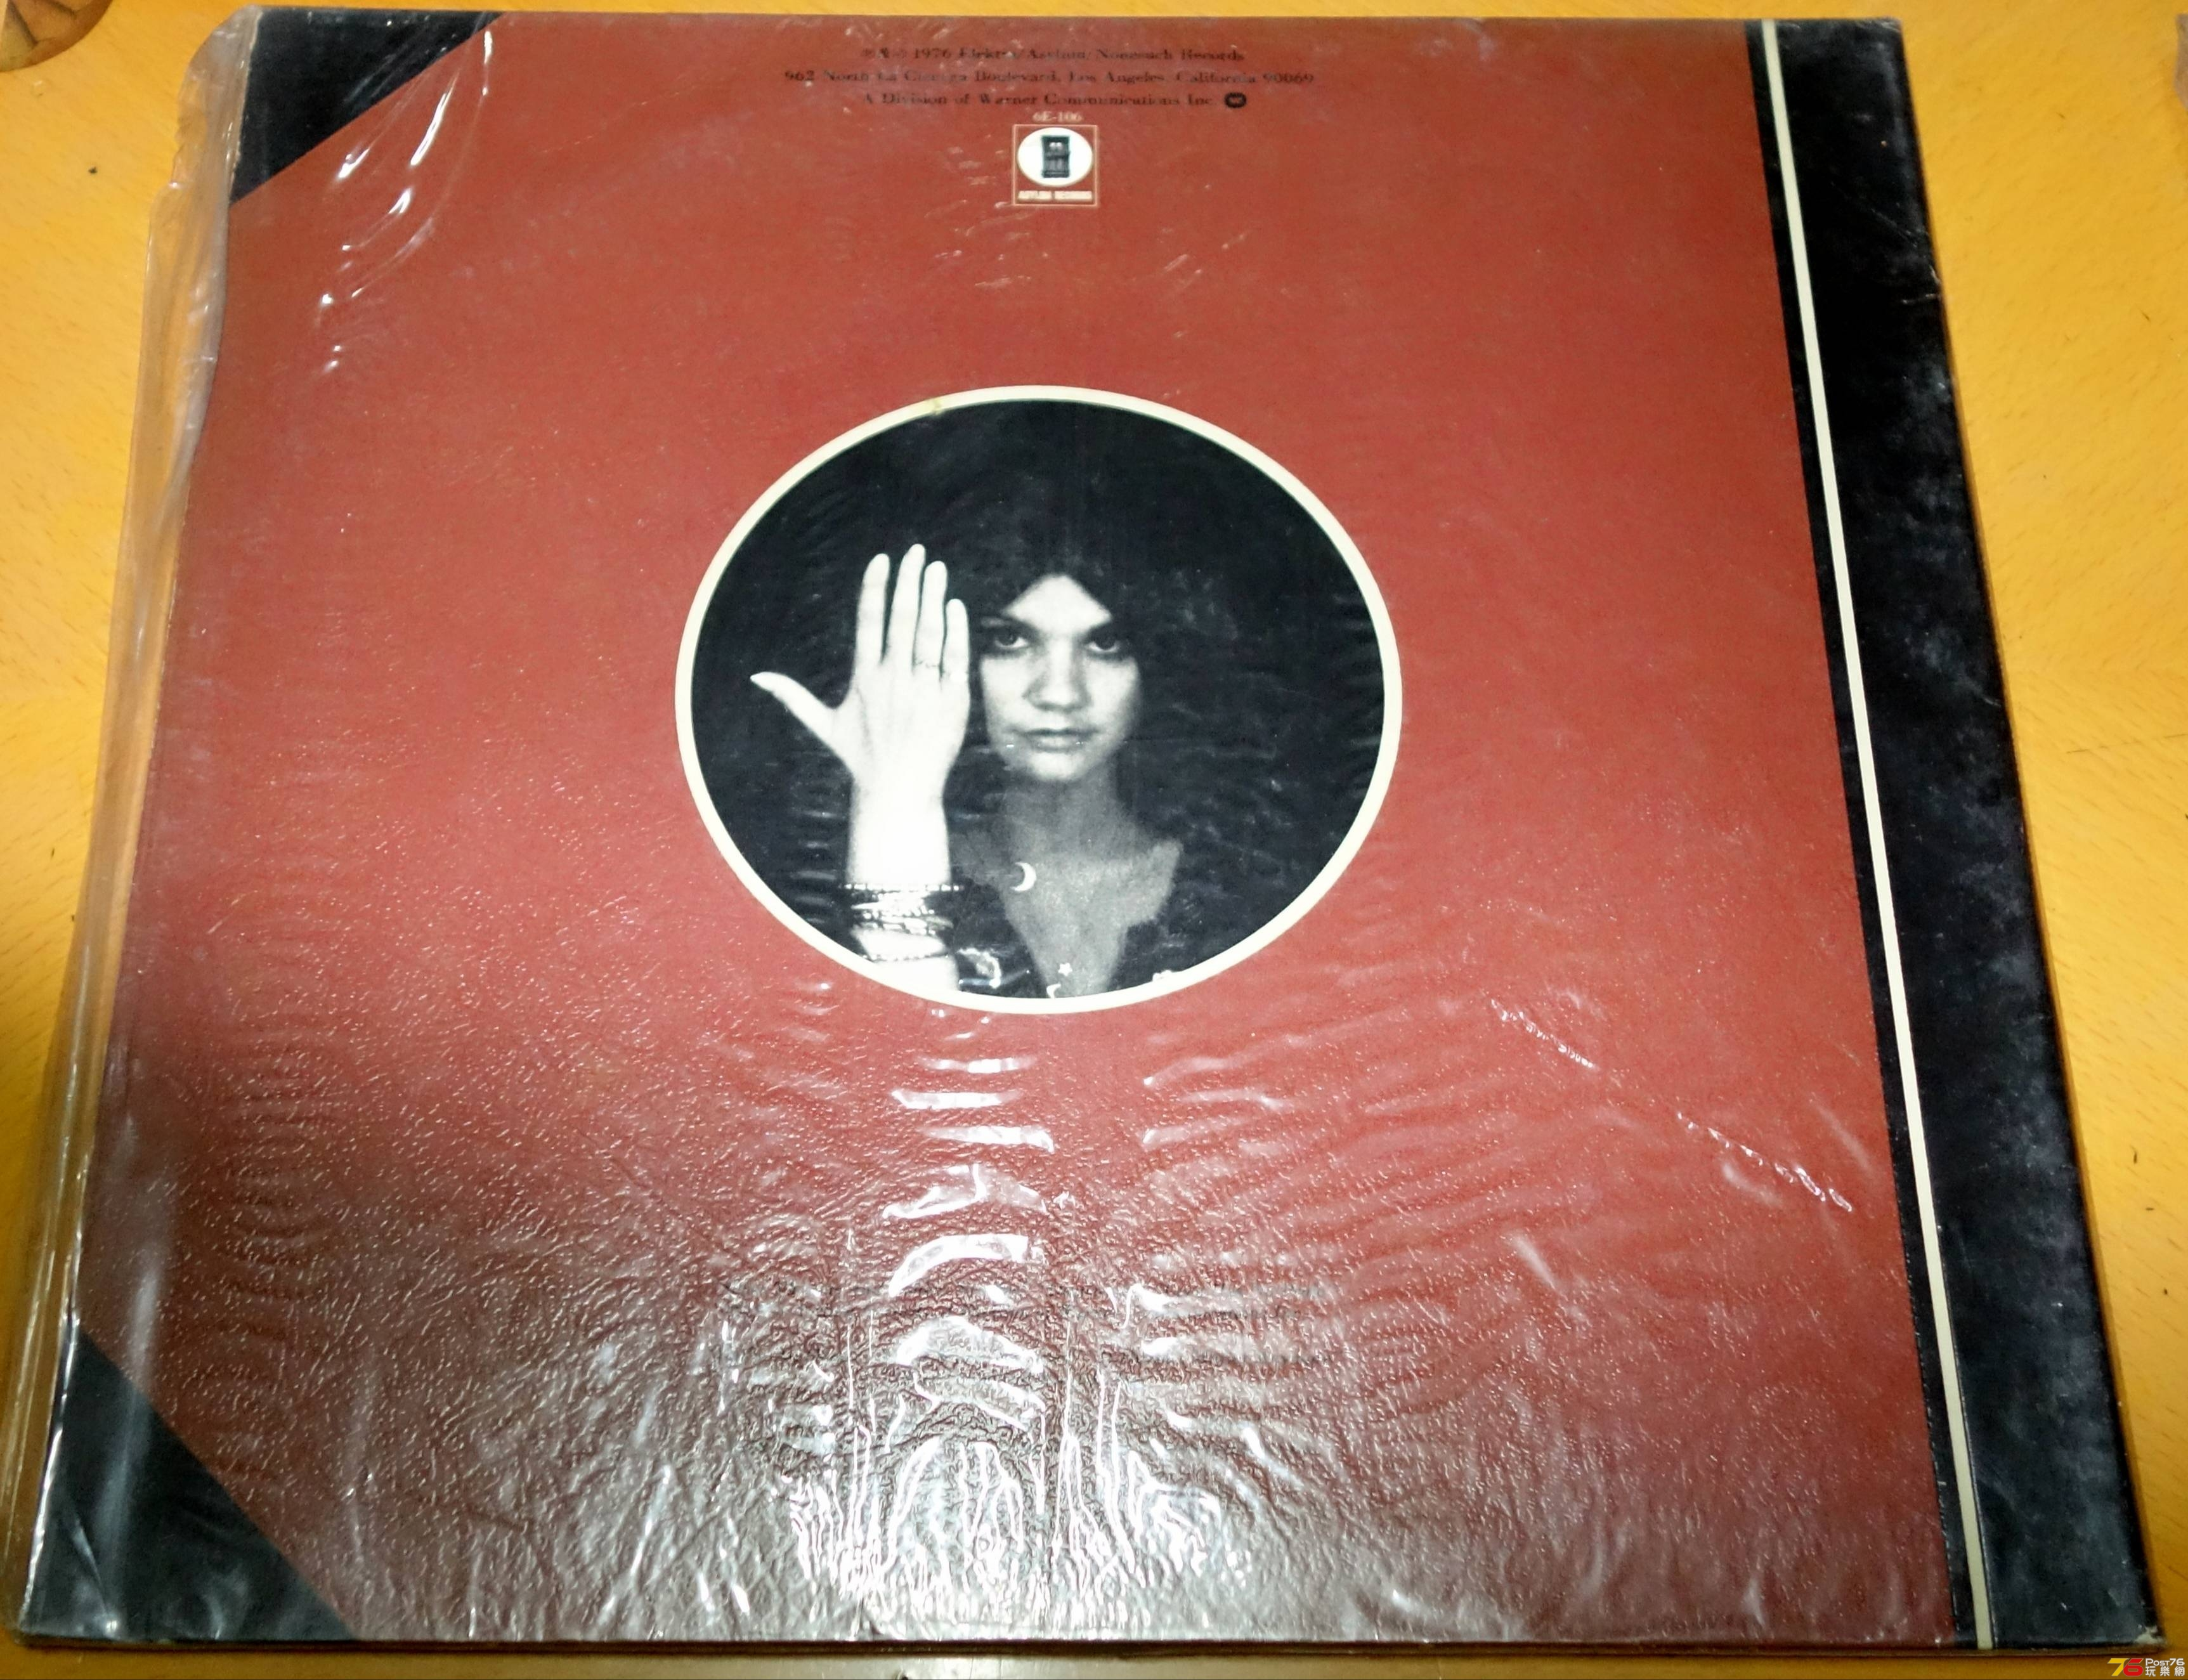 Linda Ronstadt  Greatest Hits LP ab.JPG